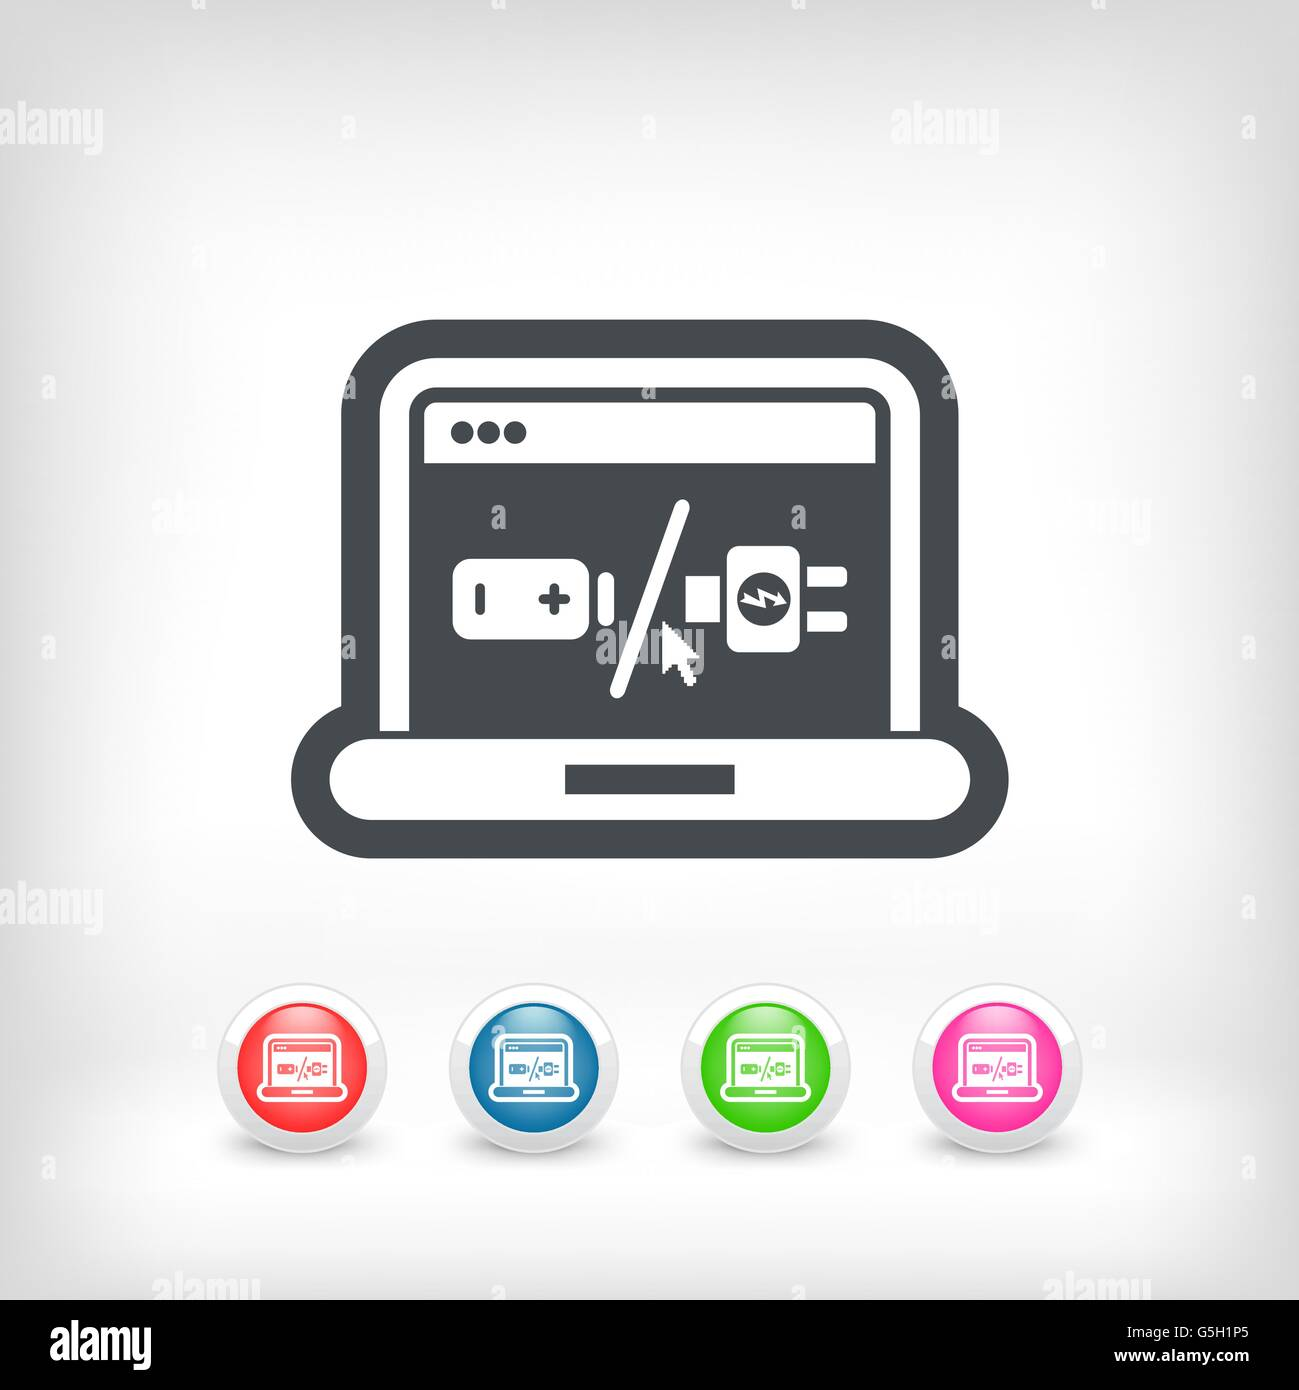 Laptop battery charge concept - Stock Image